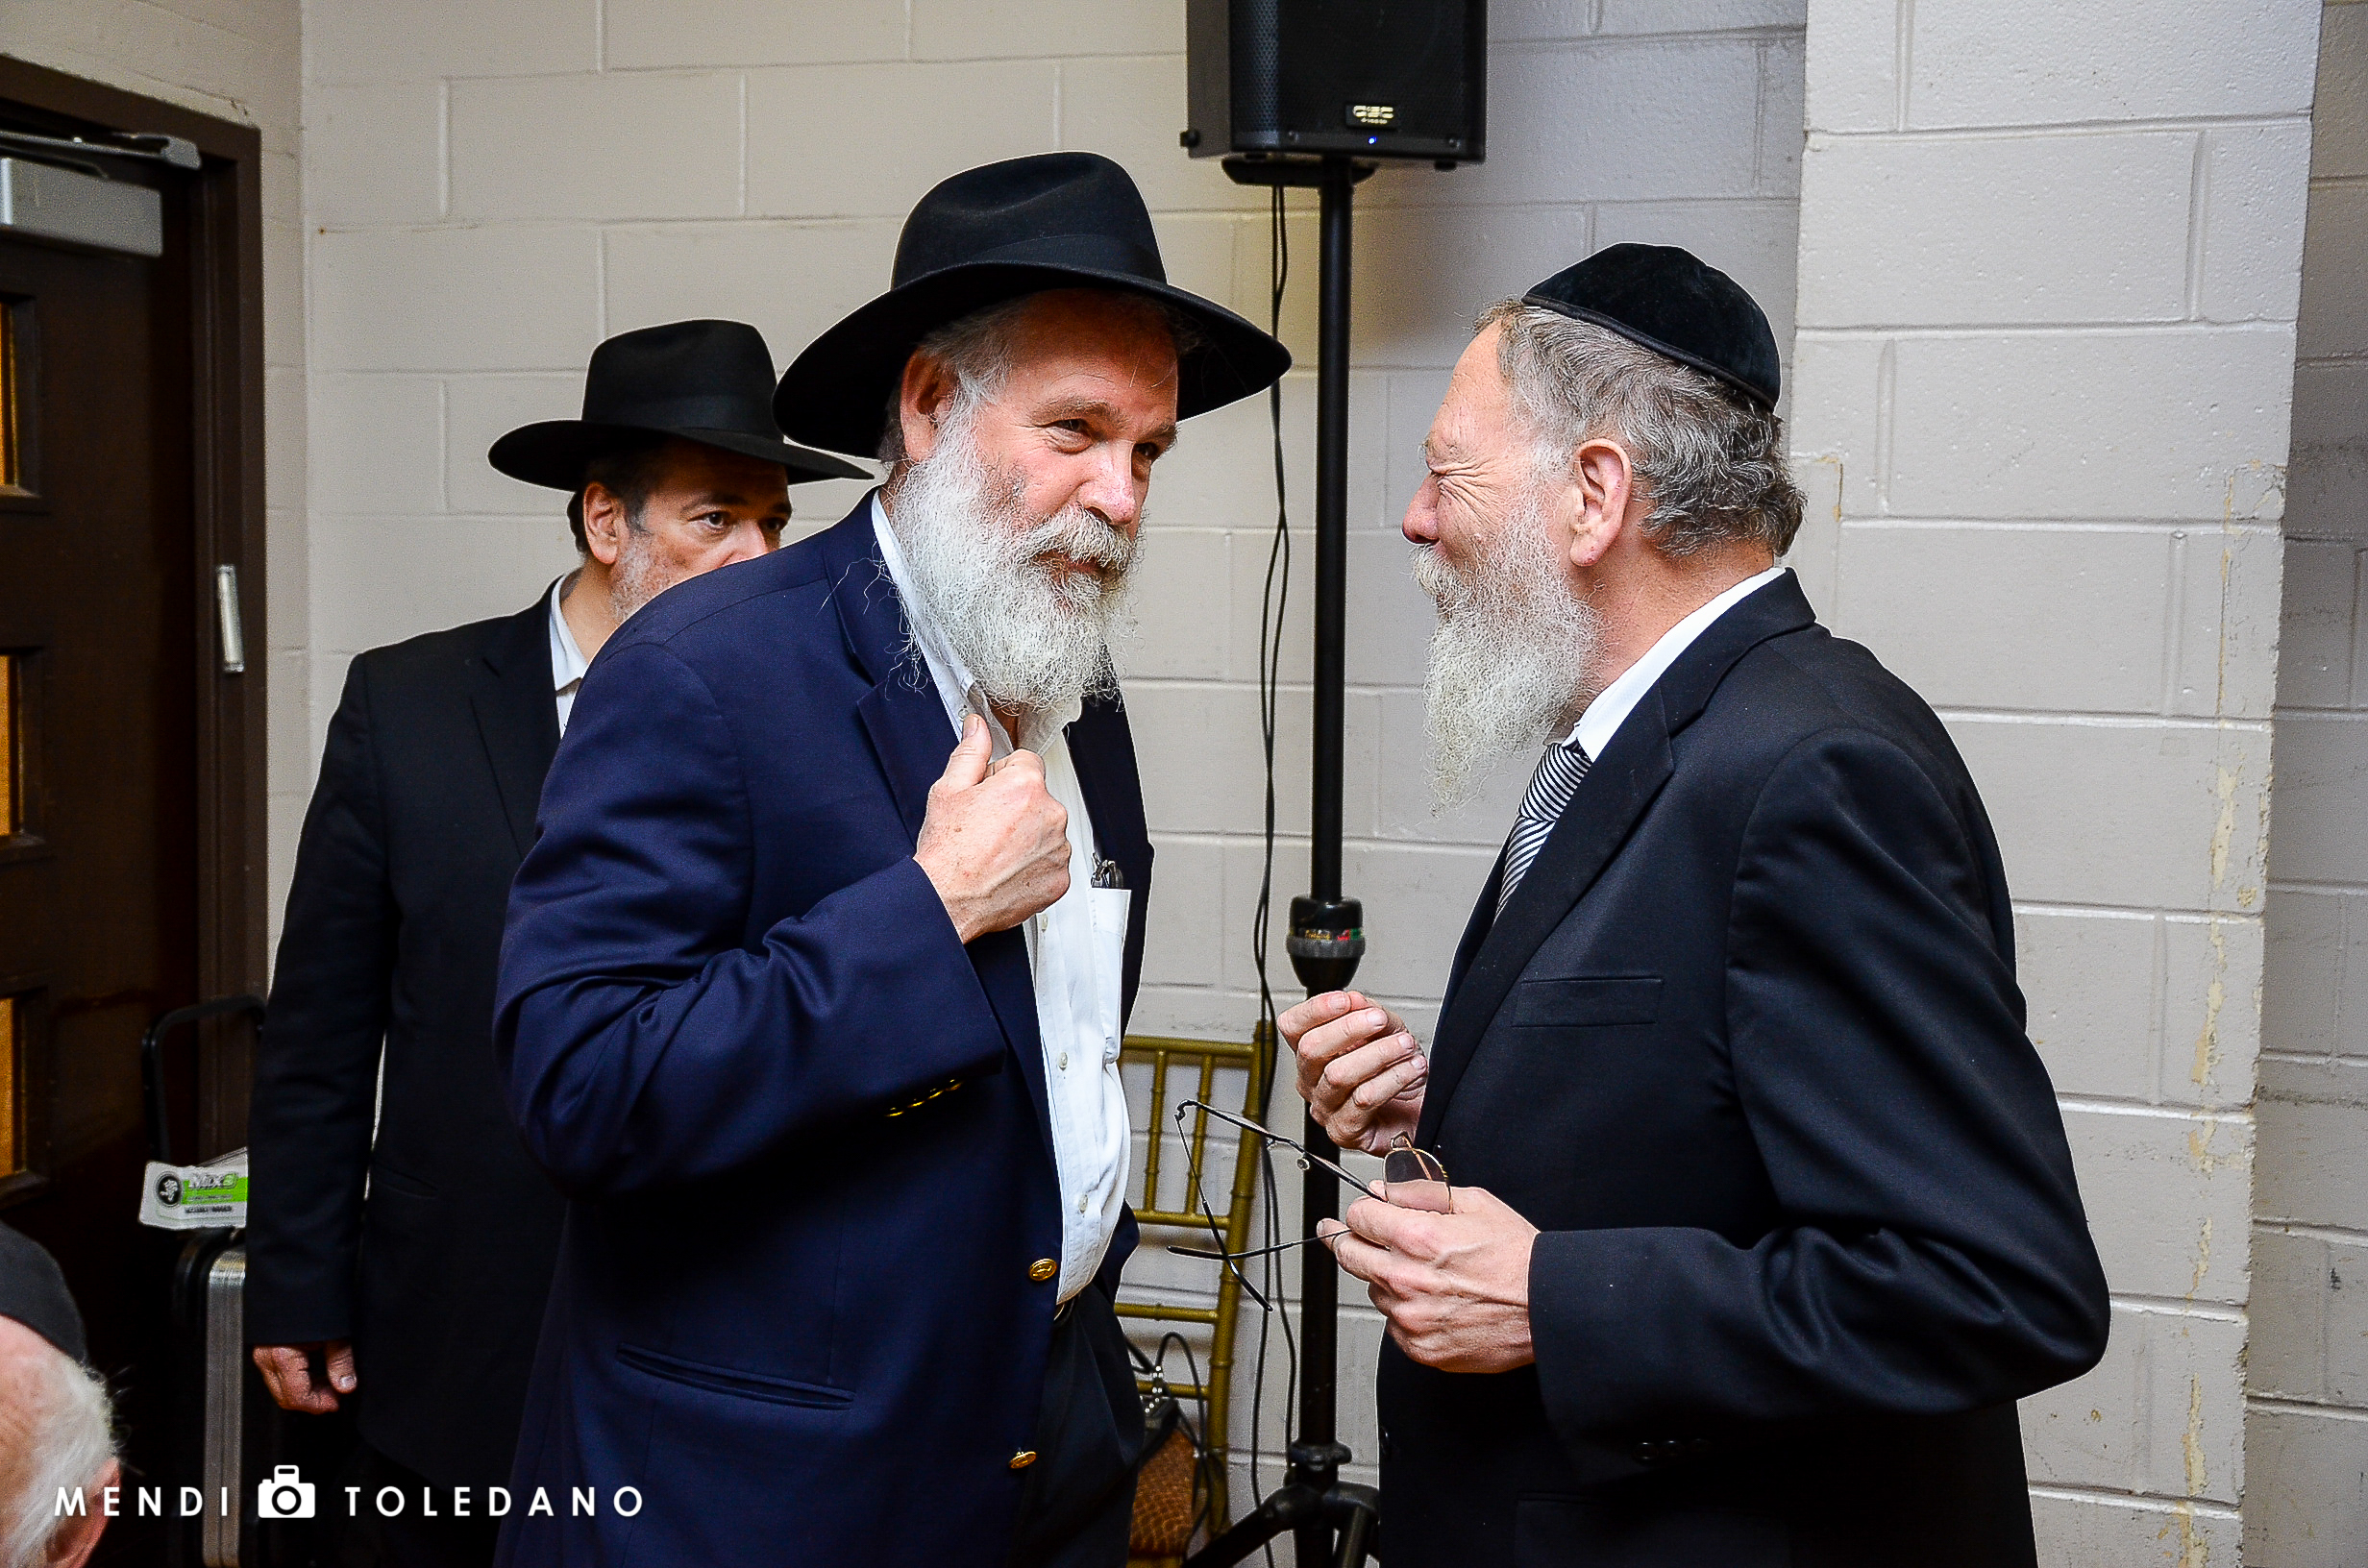 Dr. Eli Rosen with Rabbi Avraham Lider